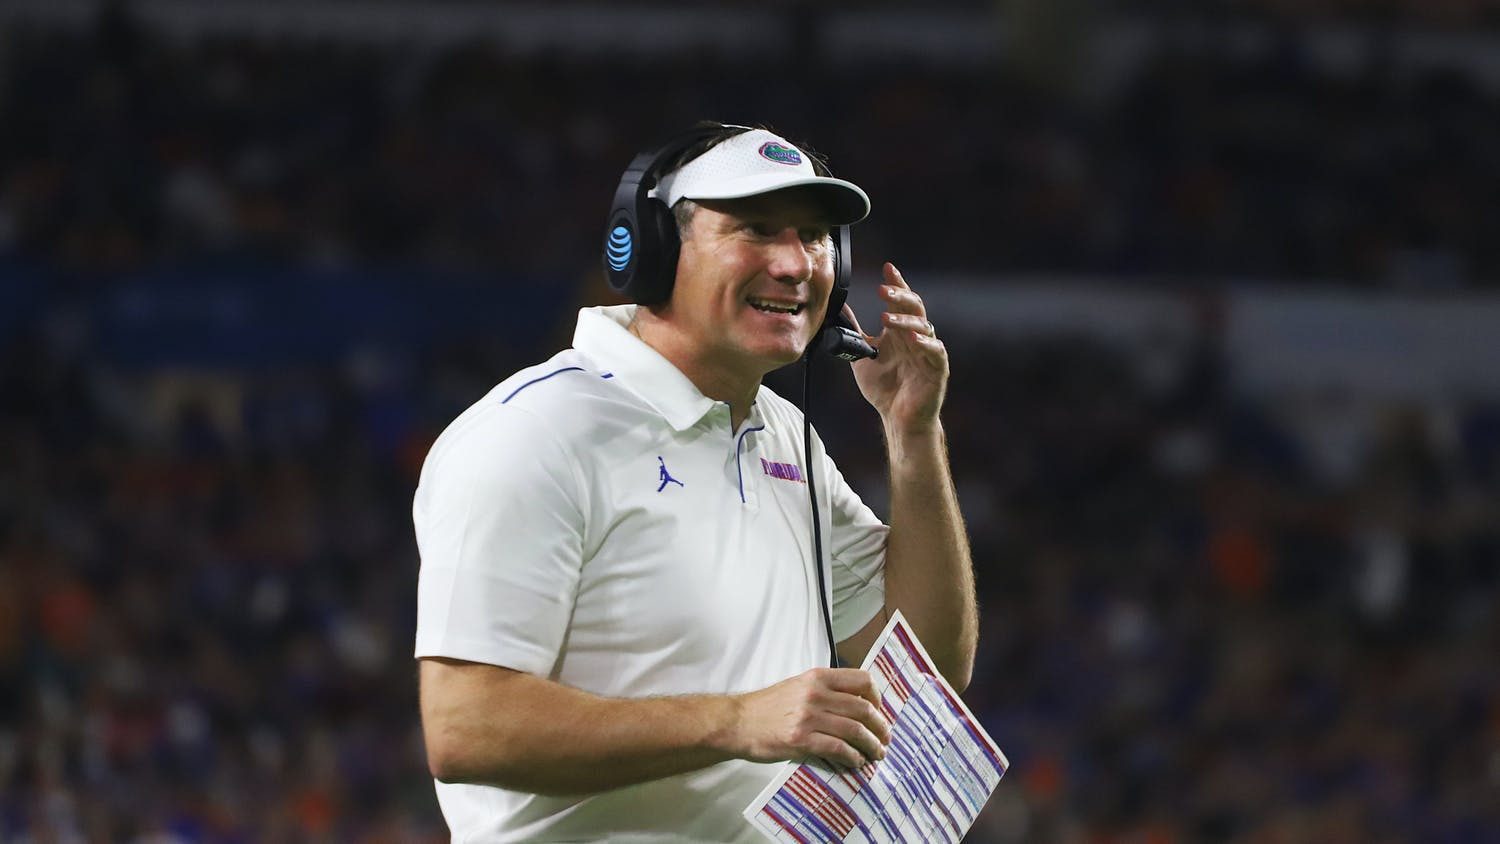 Florida head coach Dan Mullen and the Gators made a splash with the commitment of former Penn State defensive tackle Antonio Shelton Wednesday. Photo from UF-Virginia game in December 2019.